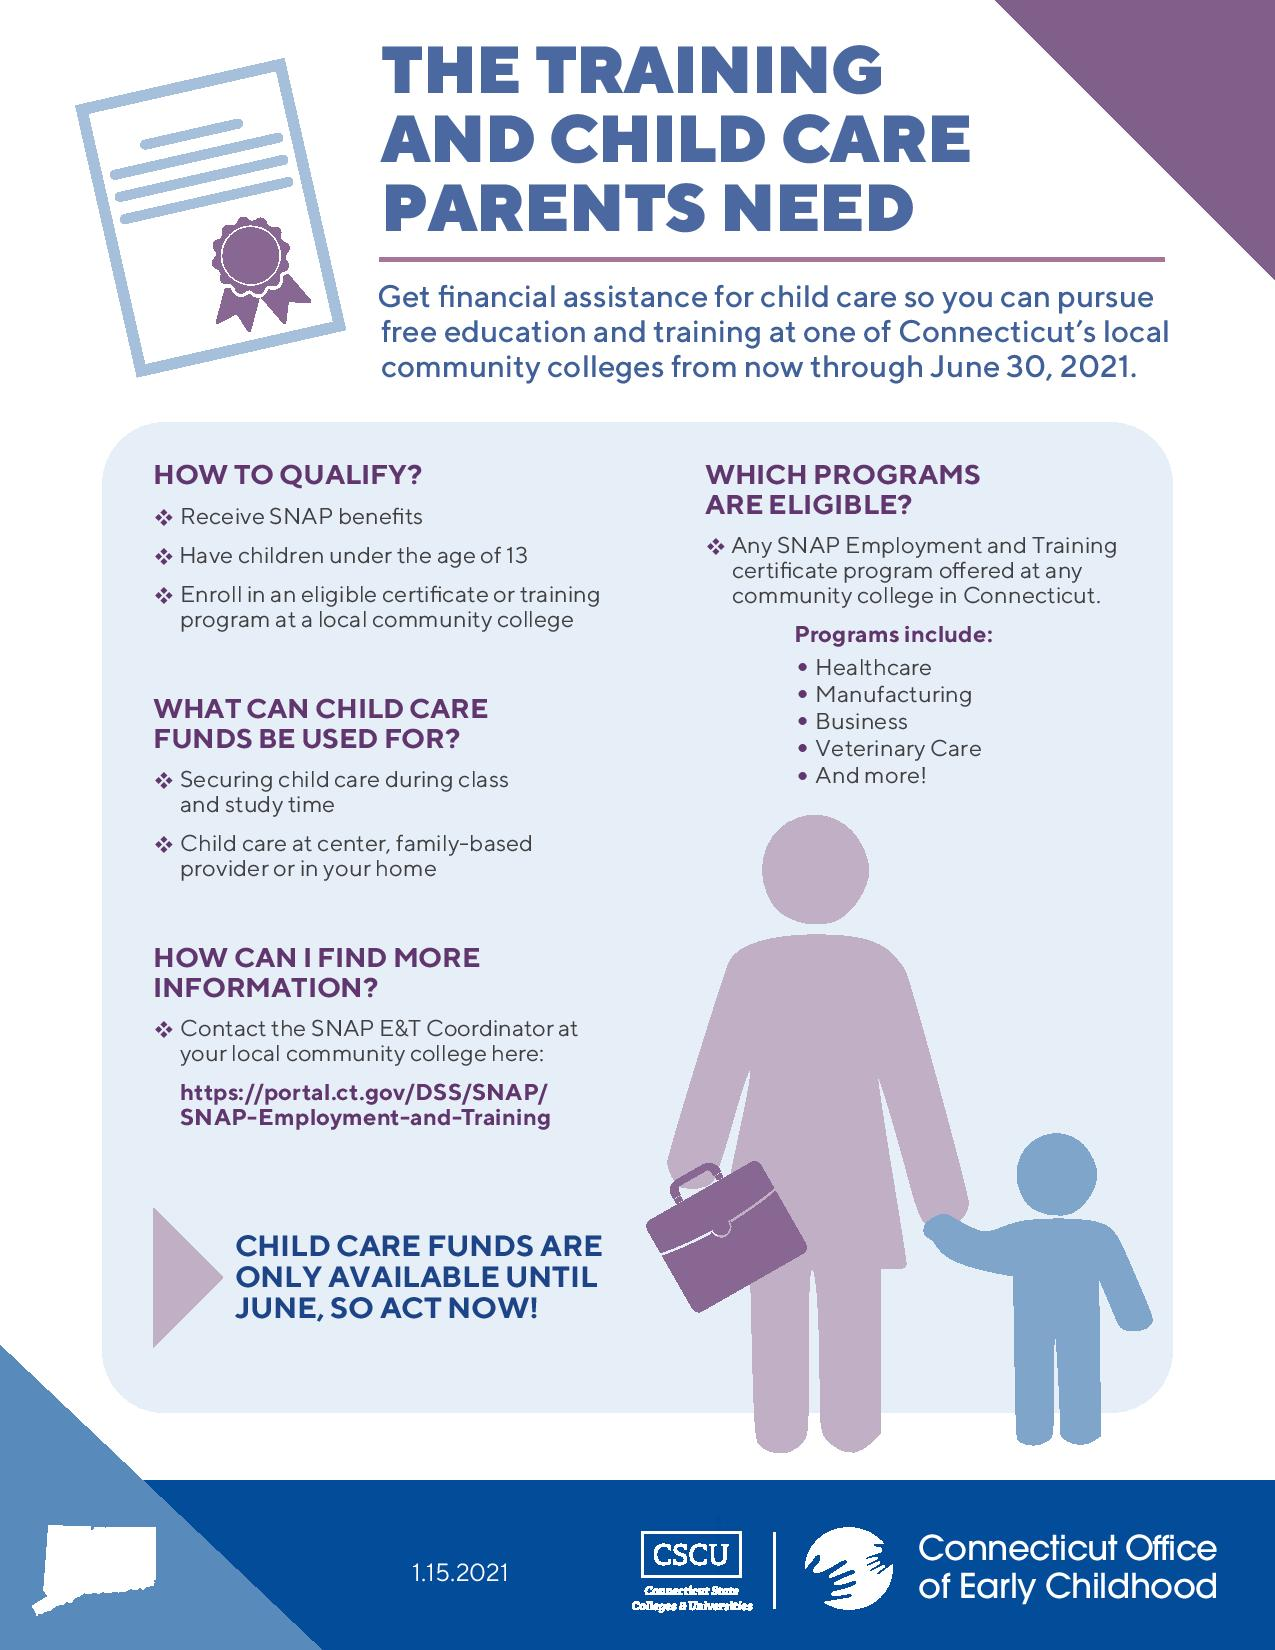 The Training and Child Care Parents Need